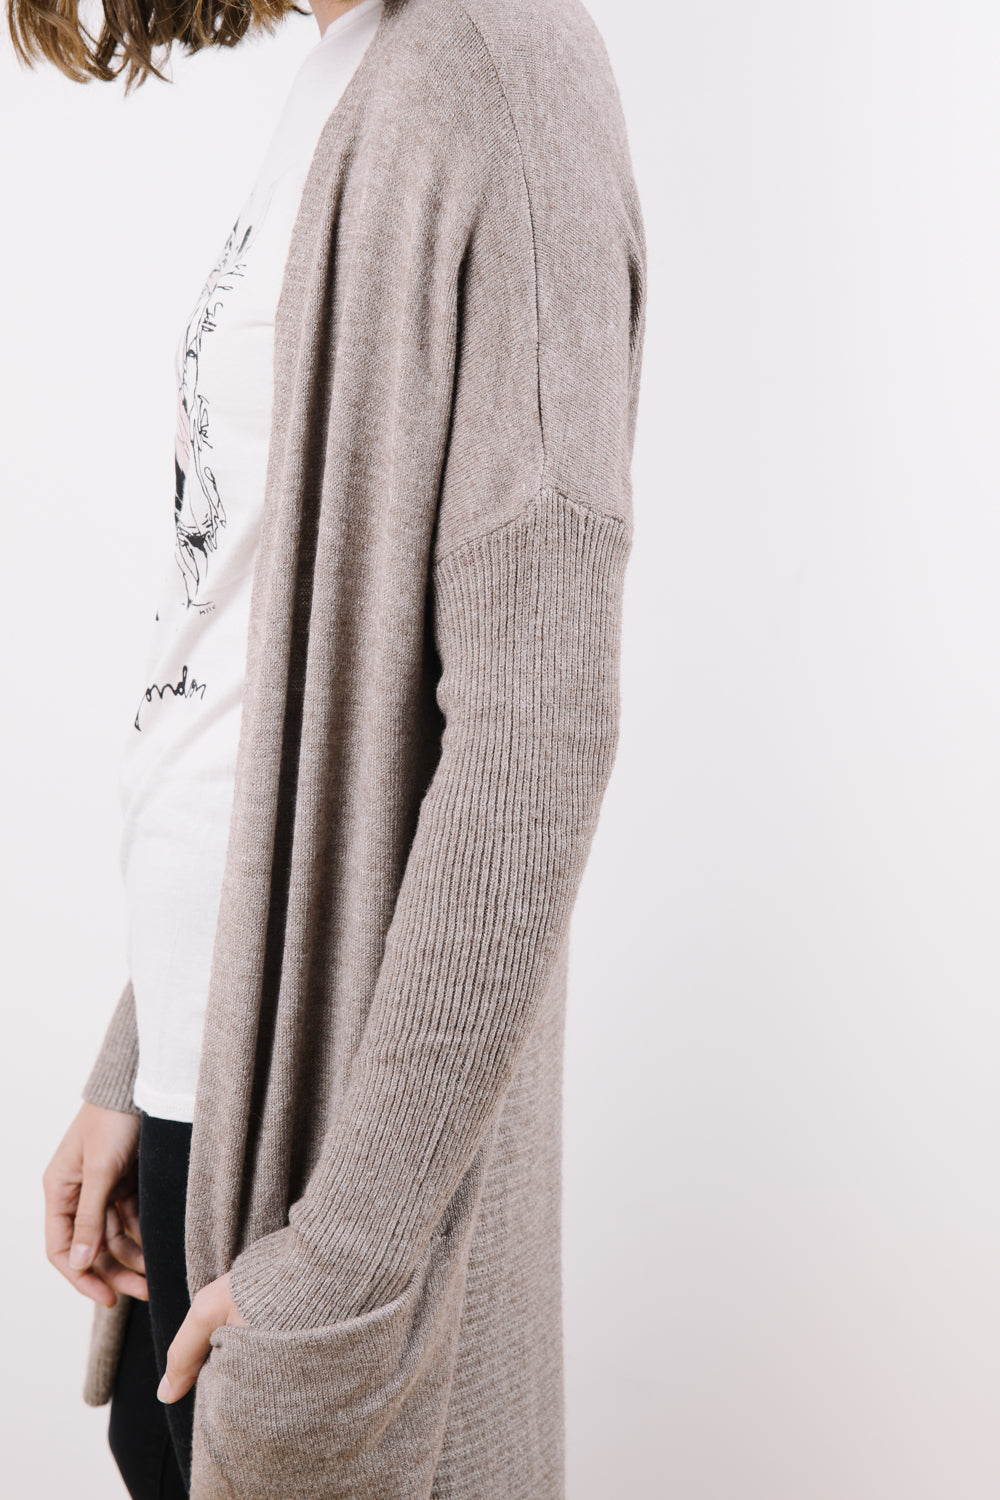 The Markie Cardigan in Mocha